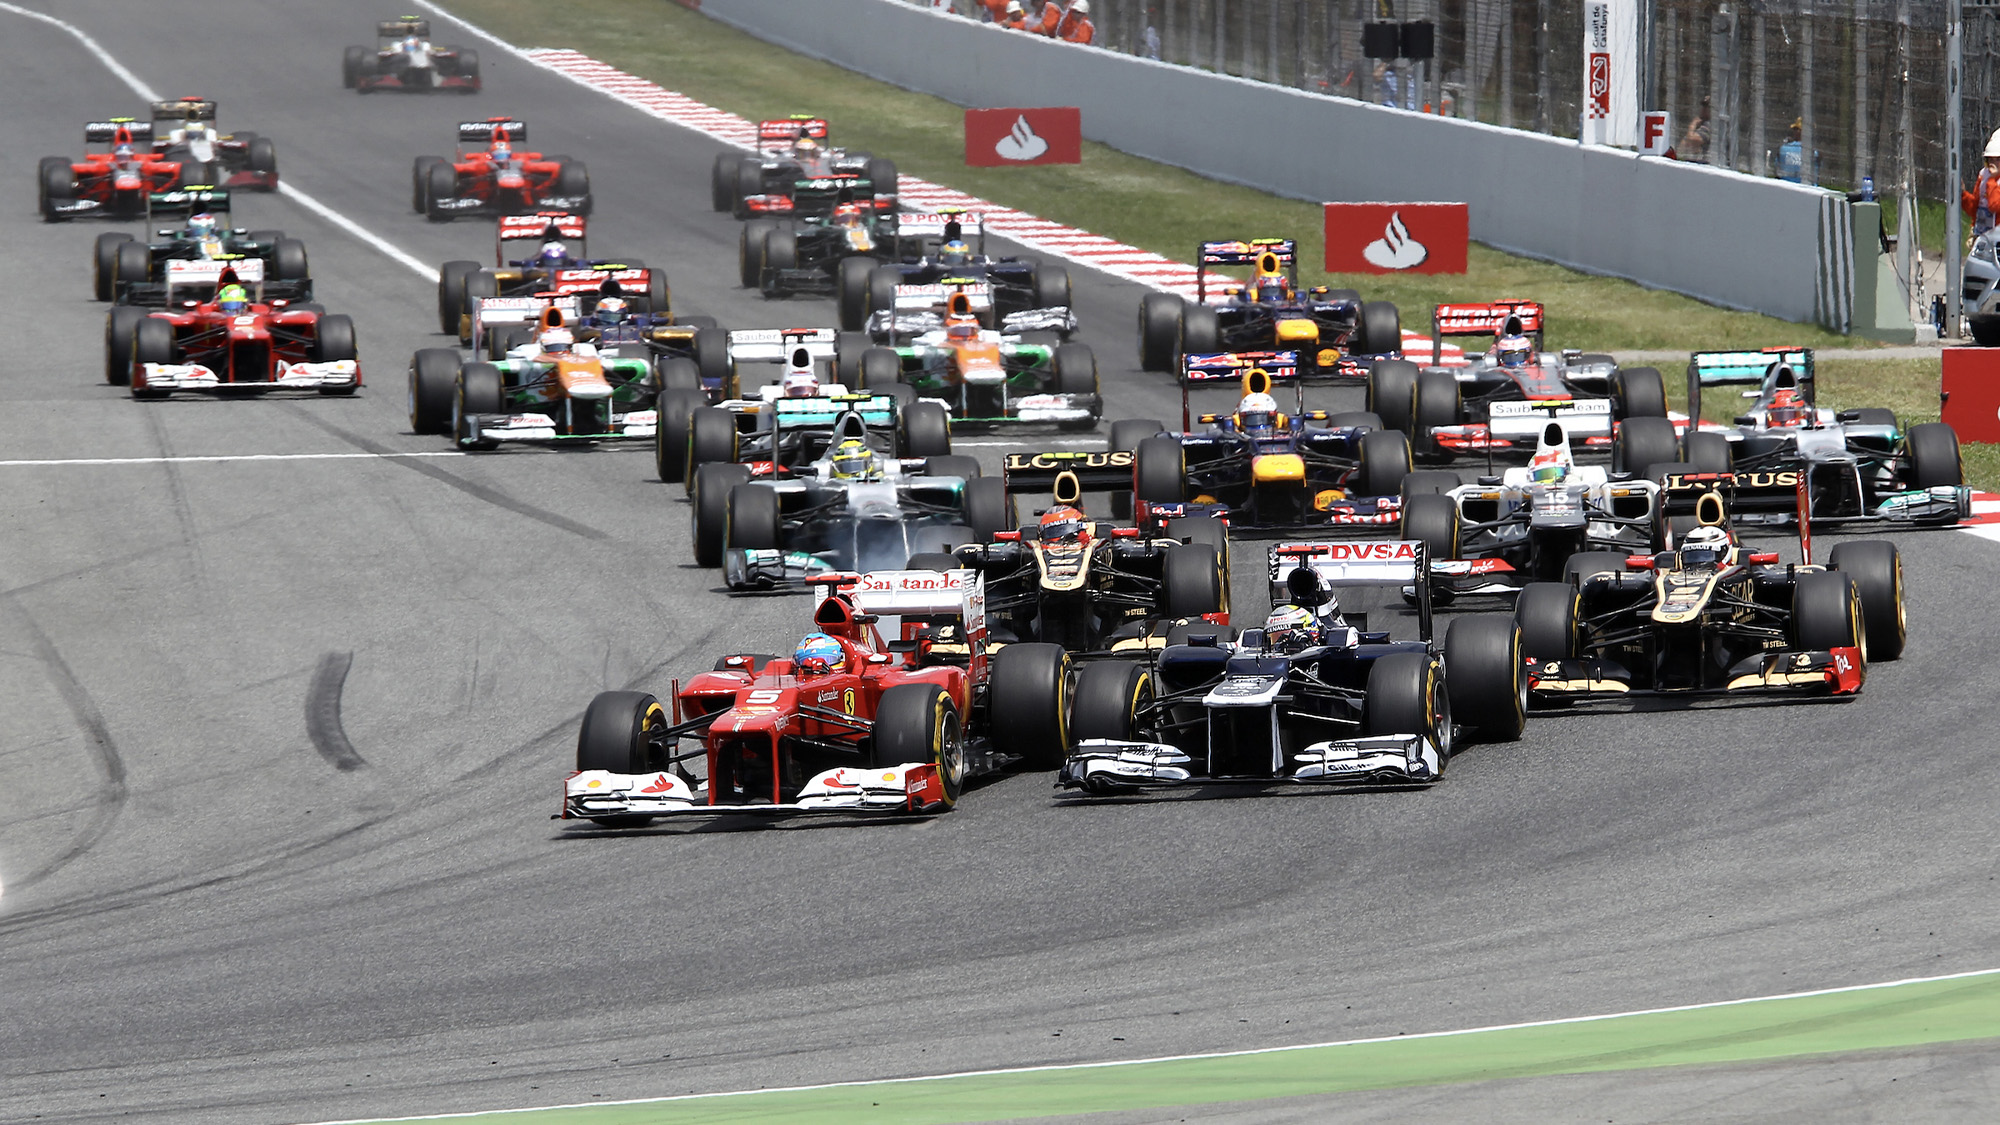 Fernando Alonso gets ahead of Pastor Maldonado at the start of the 2012 Spanish Grand Prix